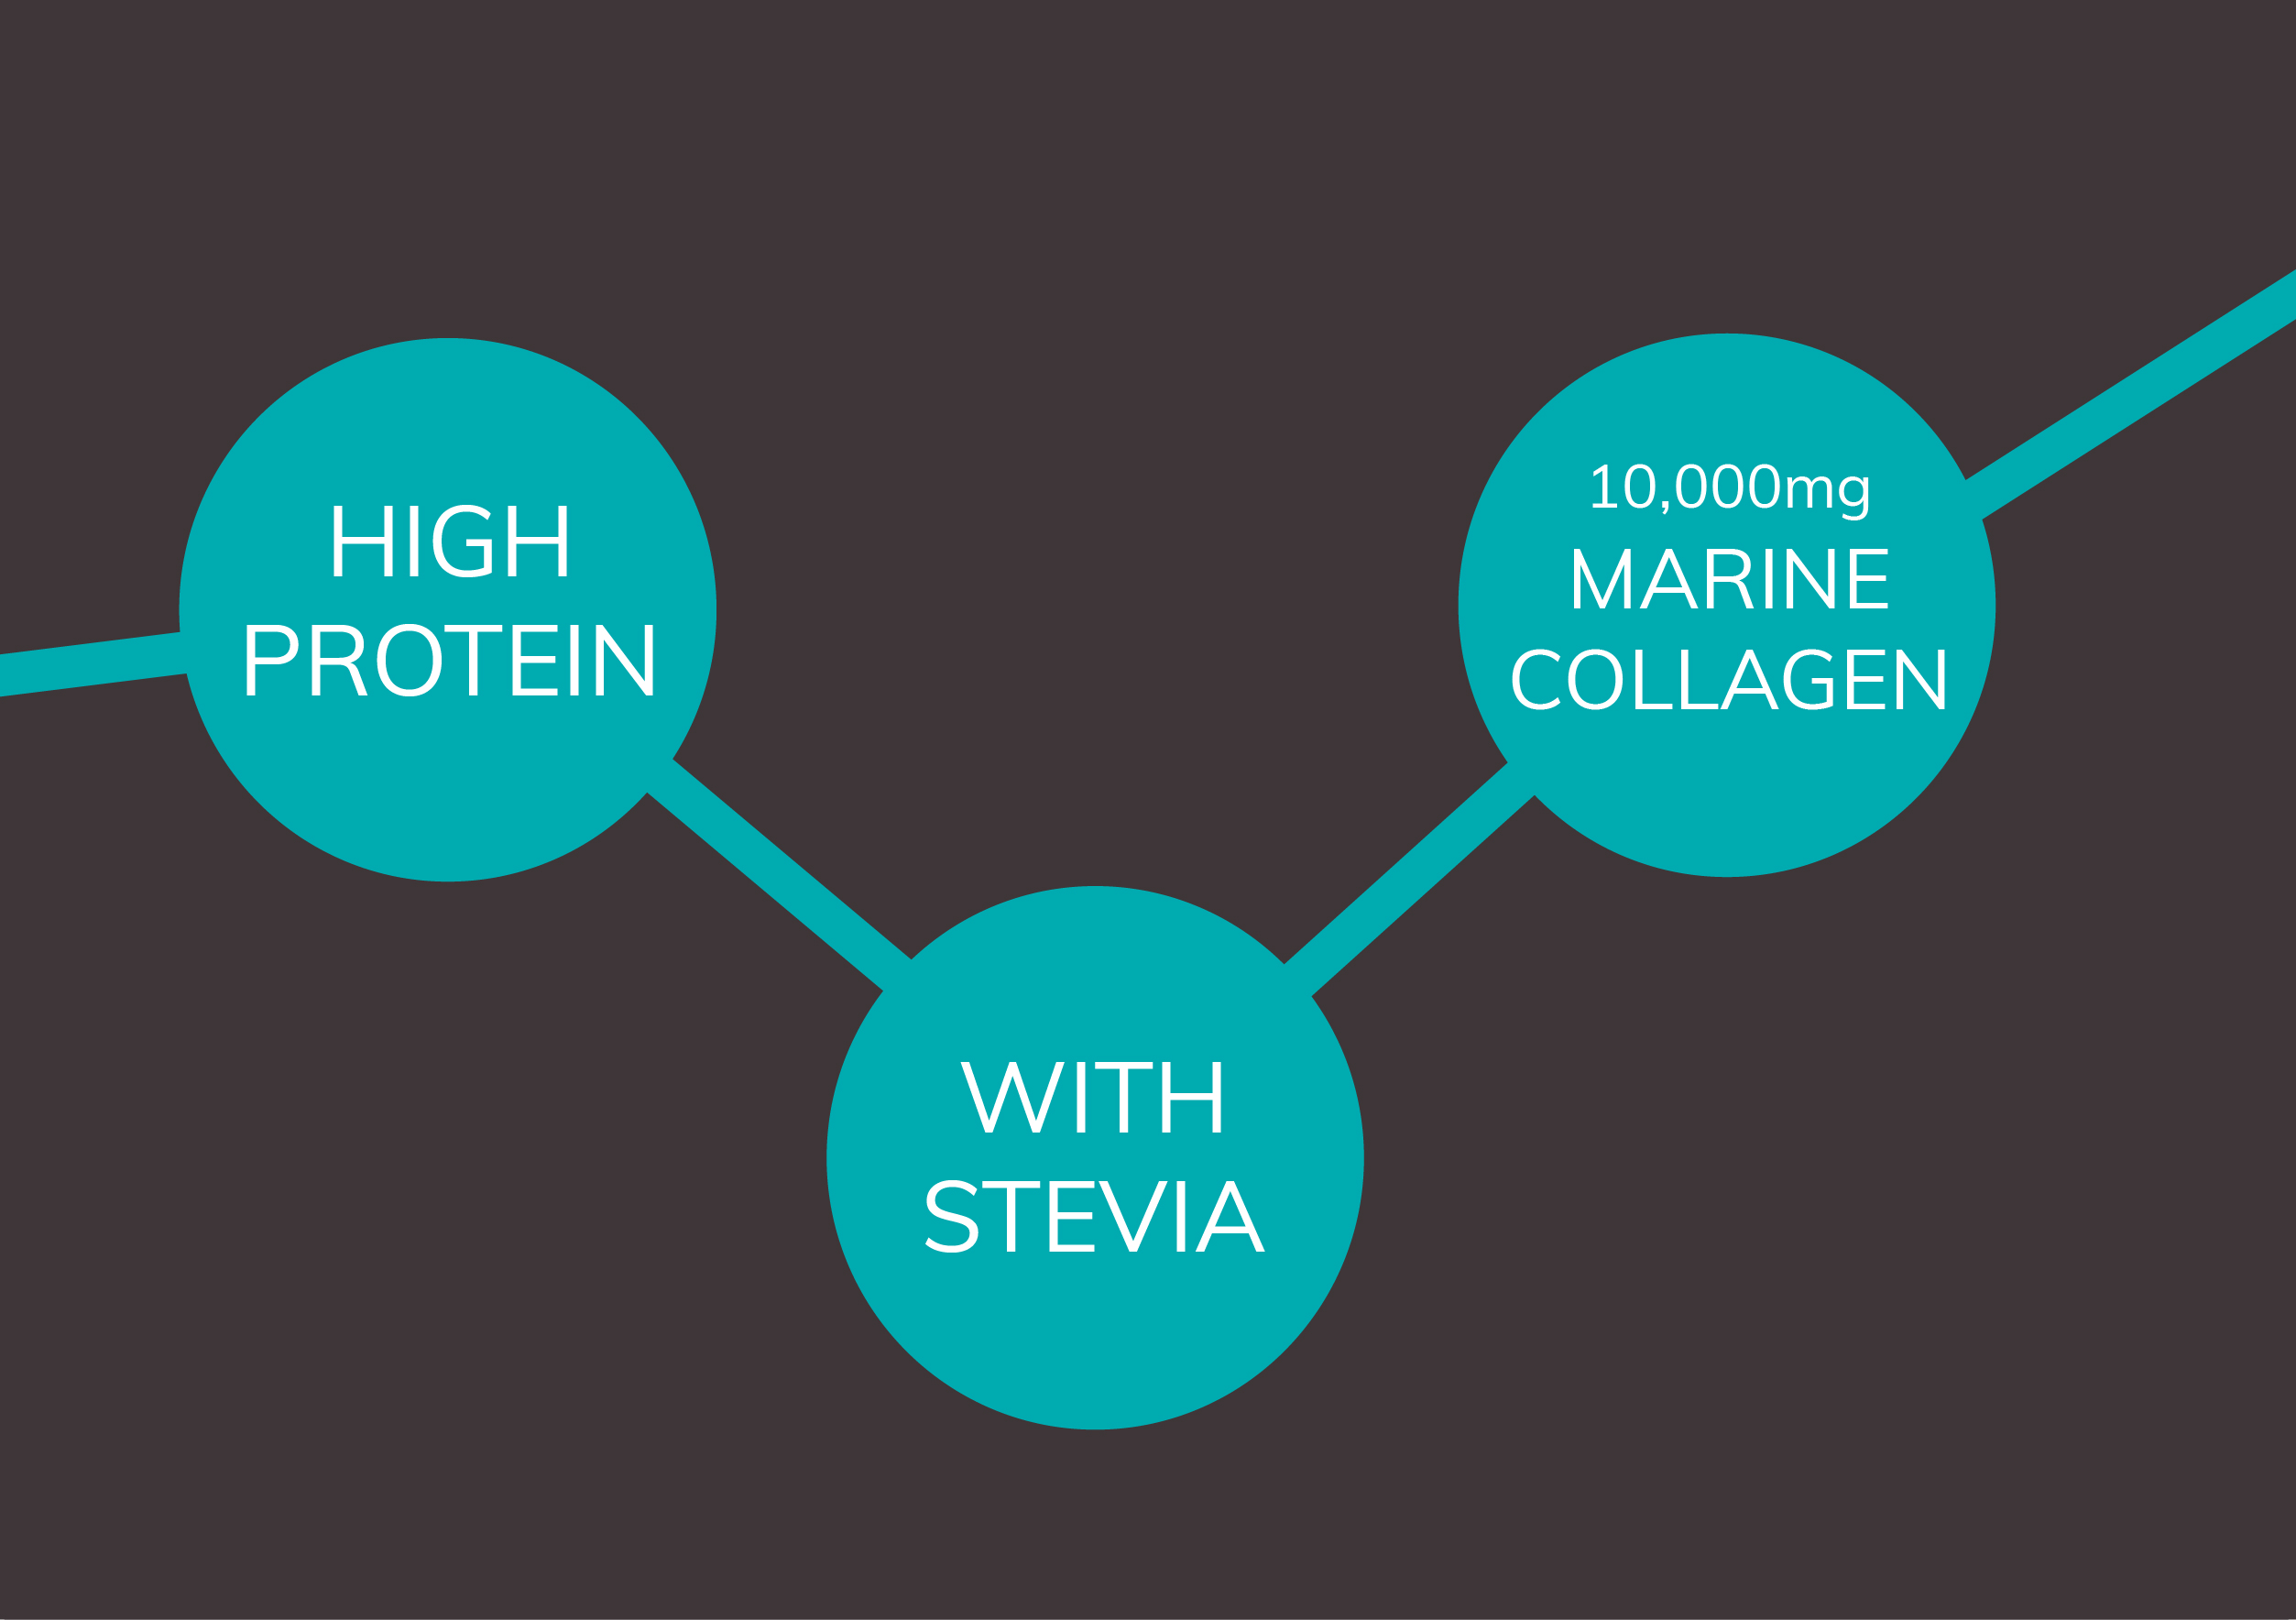 TRR high protein with stevia and 10,000mg marine collagen